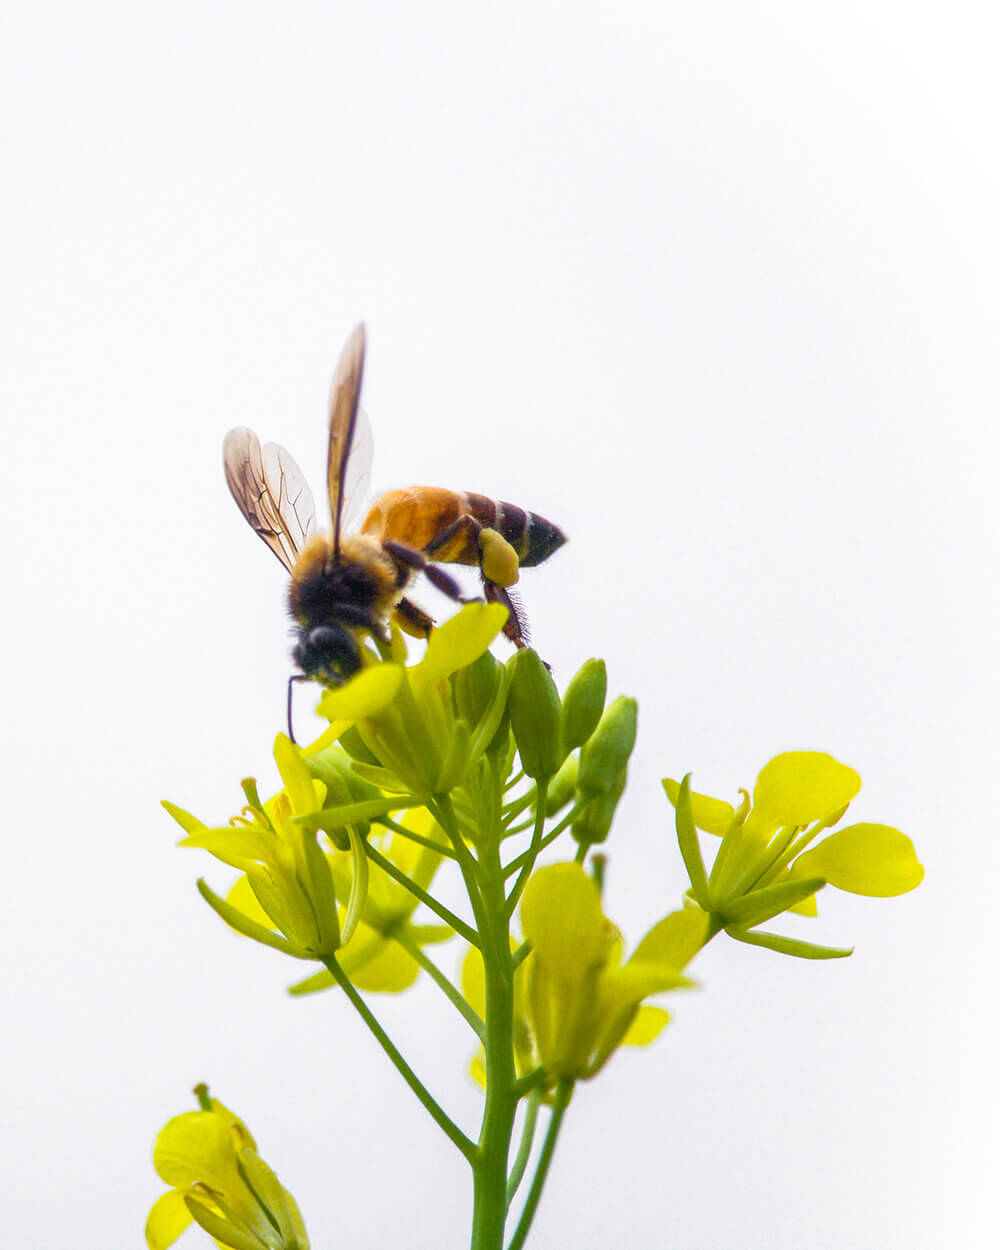 Honeybee on a flower represents the purity of natural treatment for mental health issues.